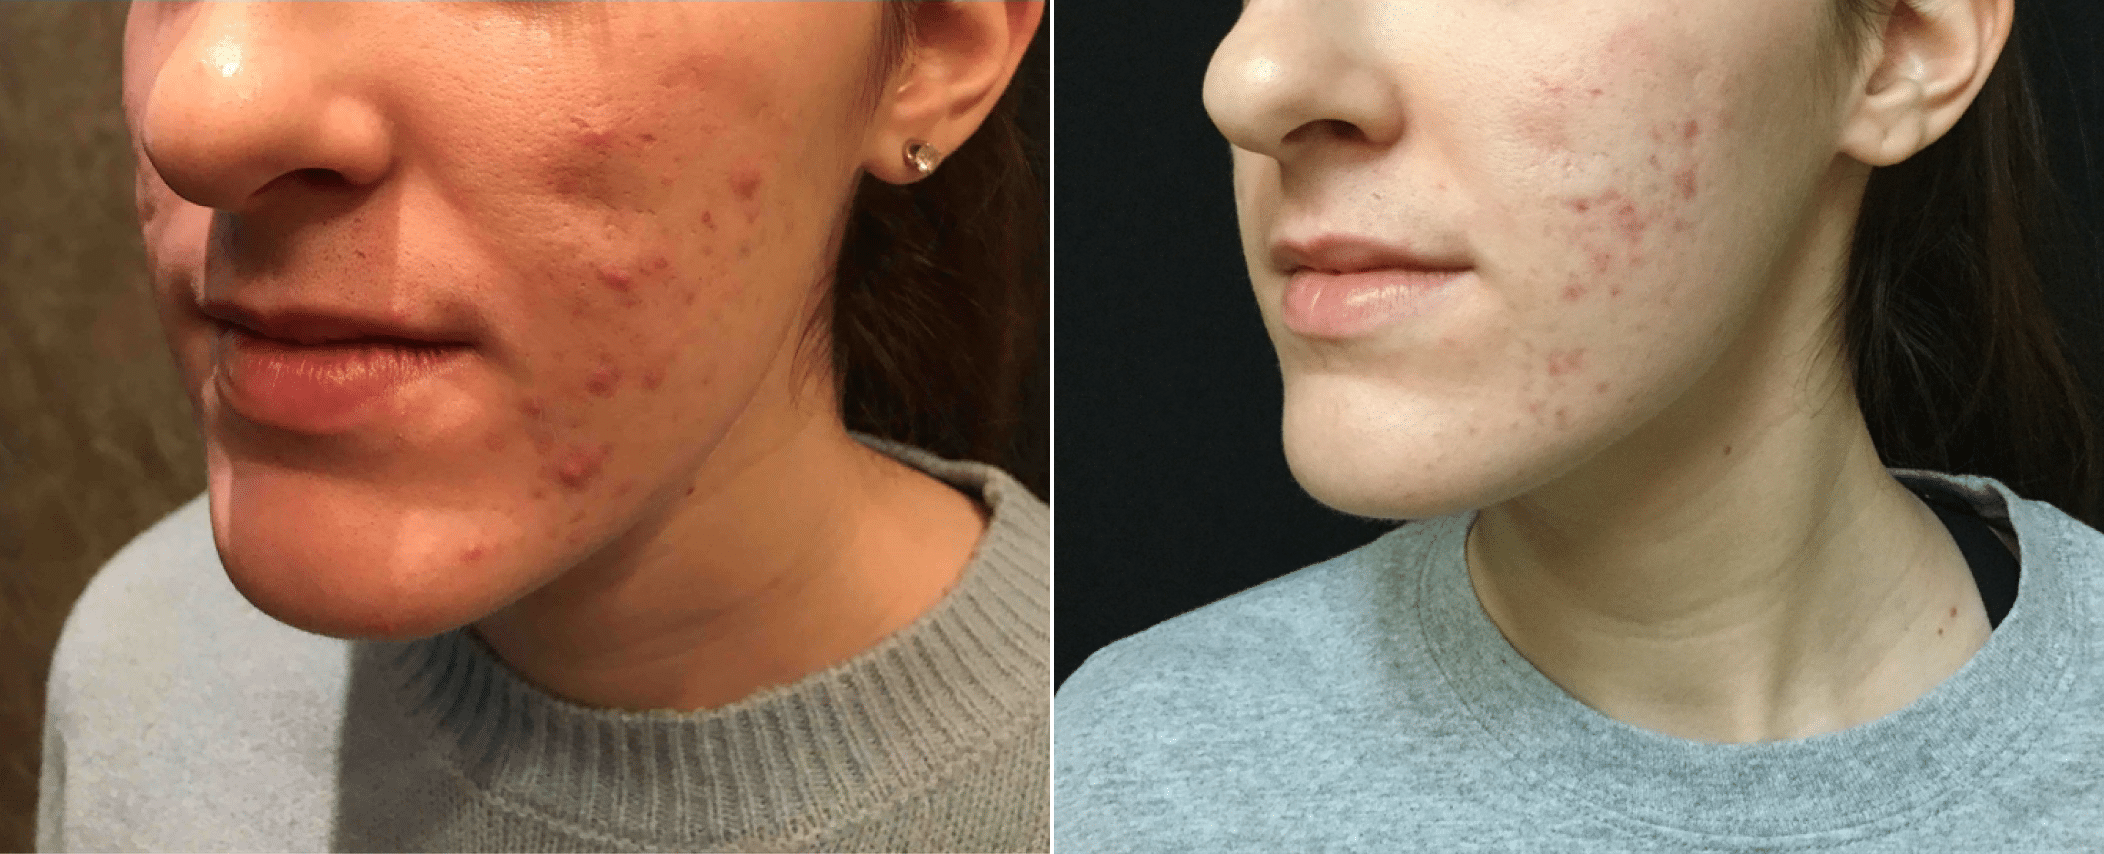 Acne Scar Subcision With Filler Before And After Photos New Jersey